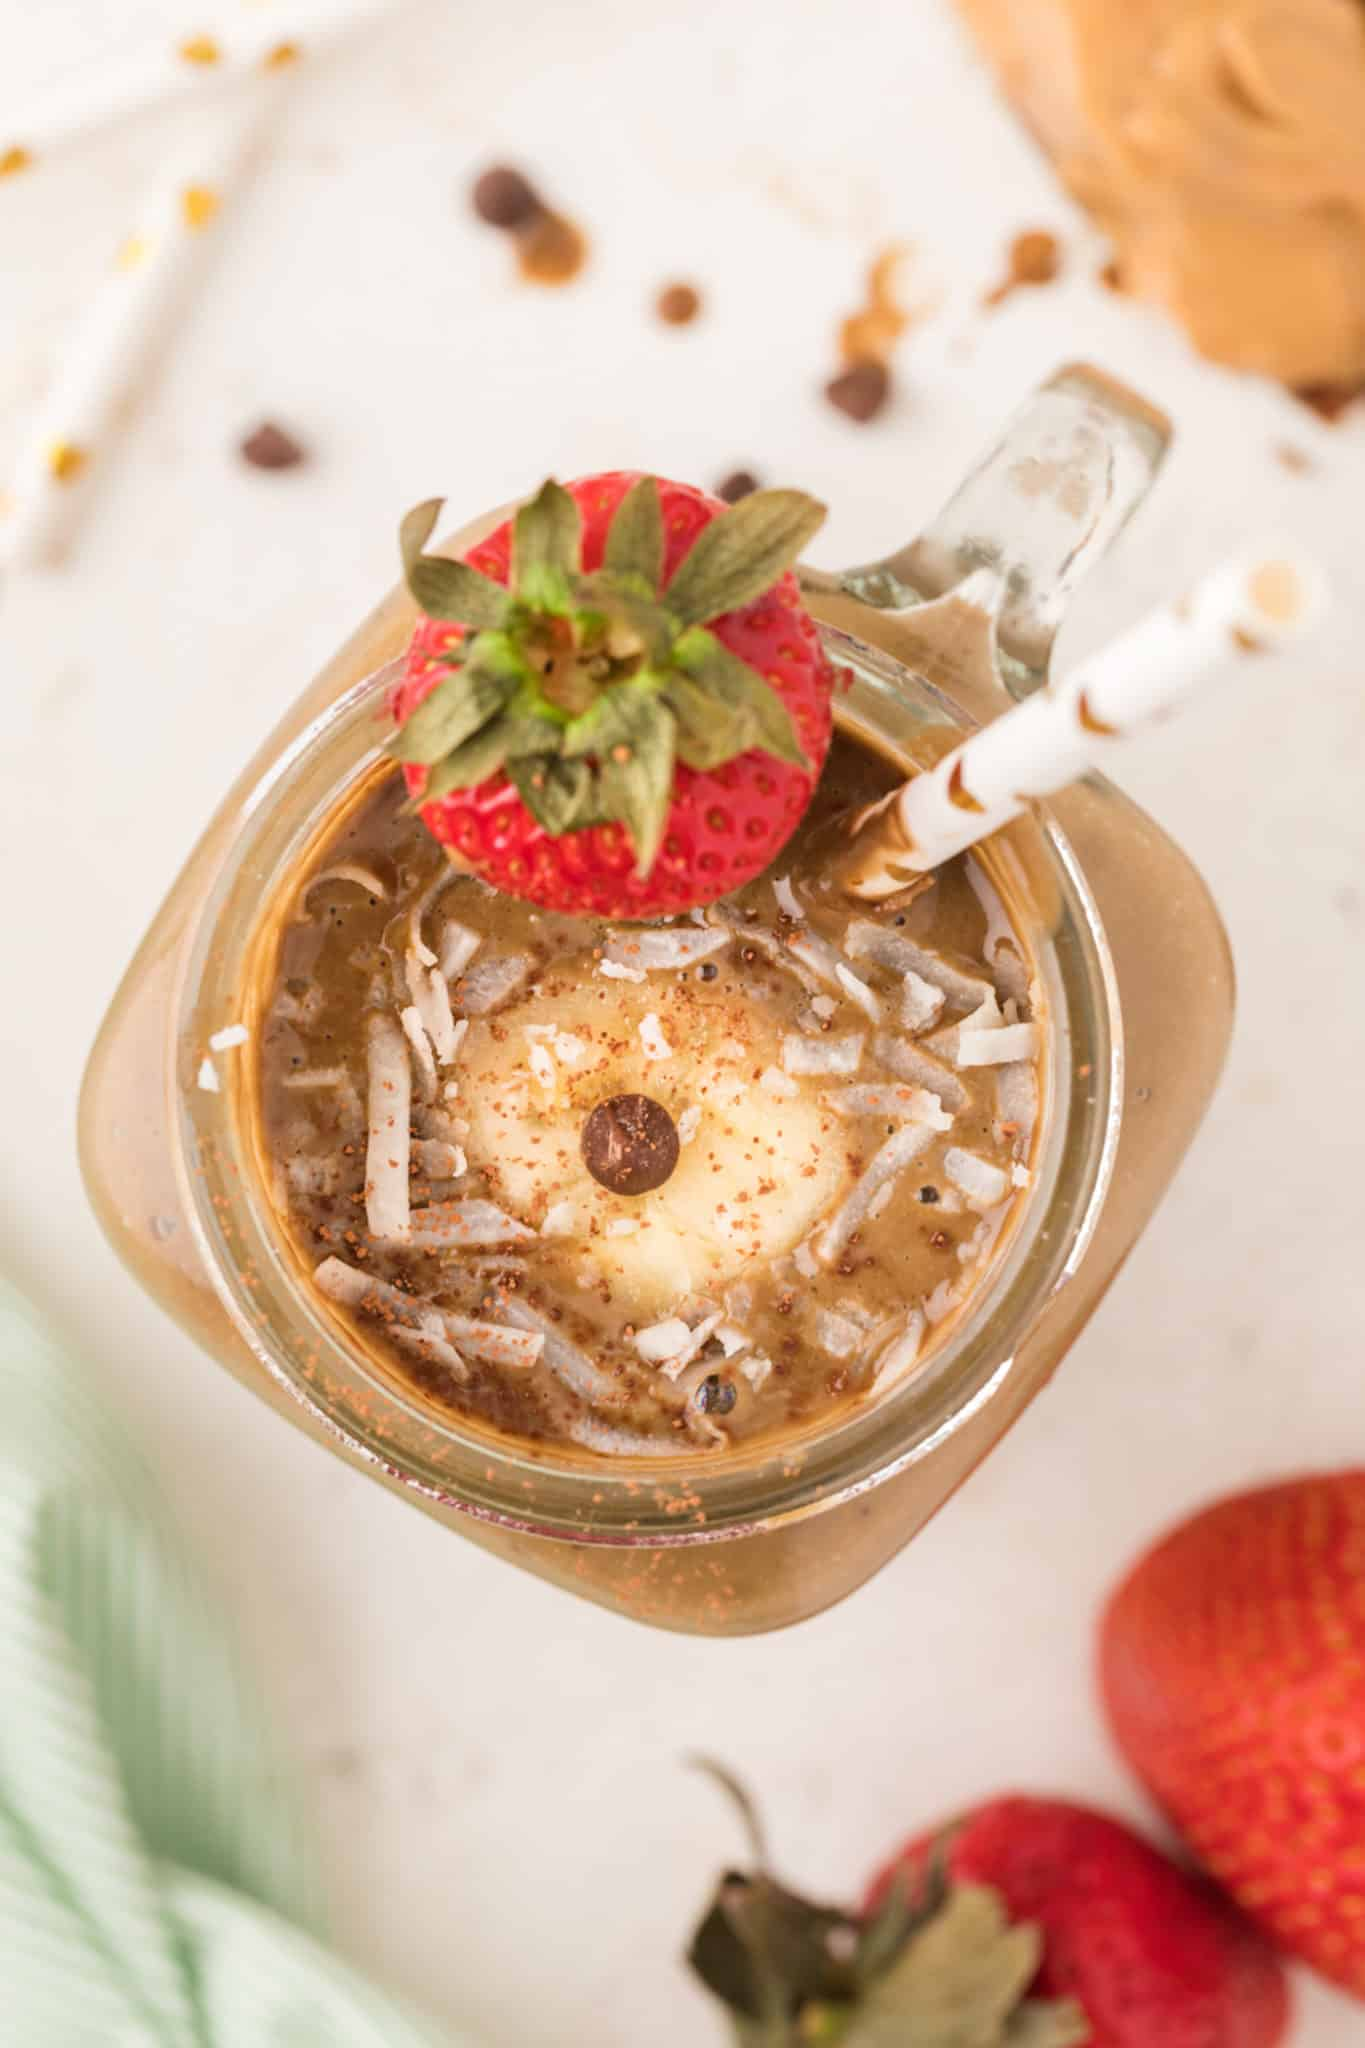 chocolate smoothie served with fresh strawberries